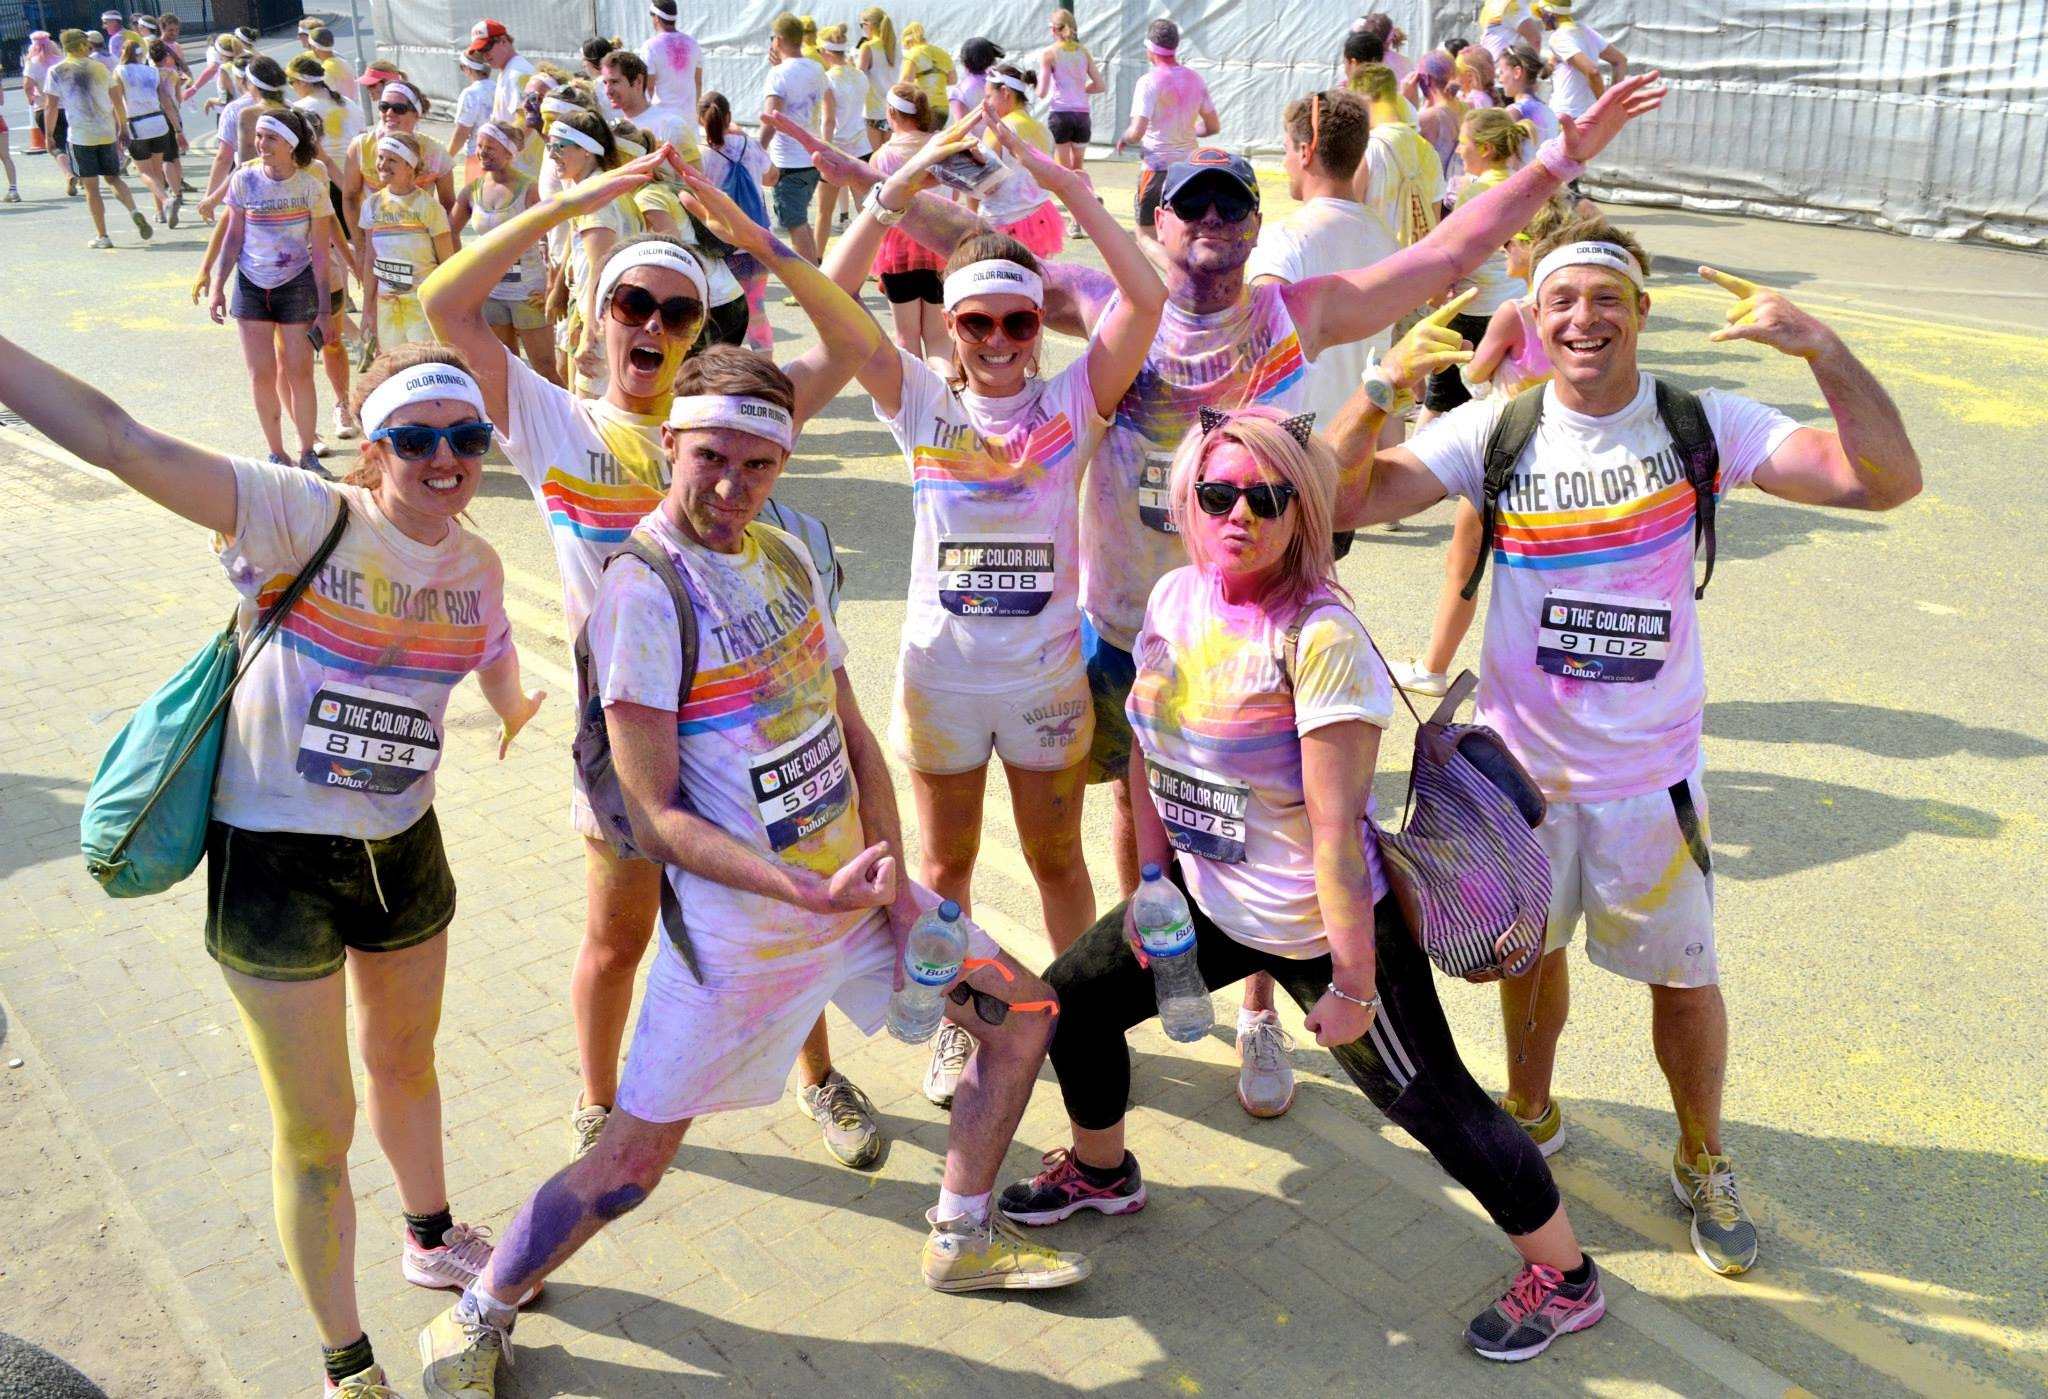 Color_Run_4.jpg